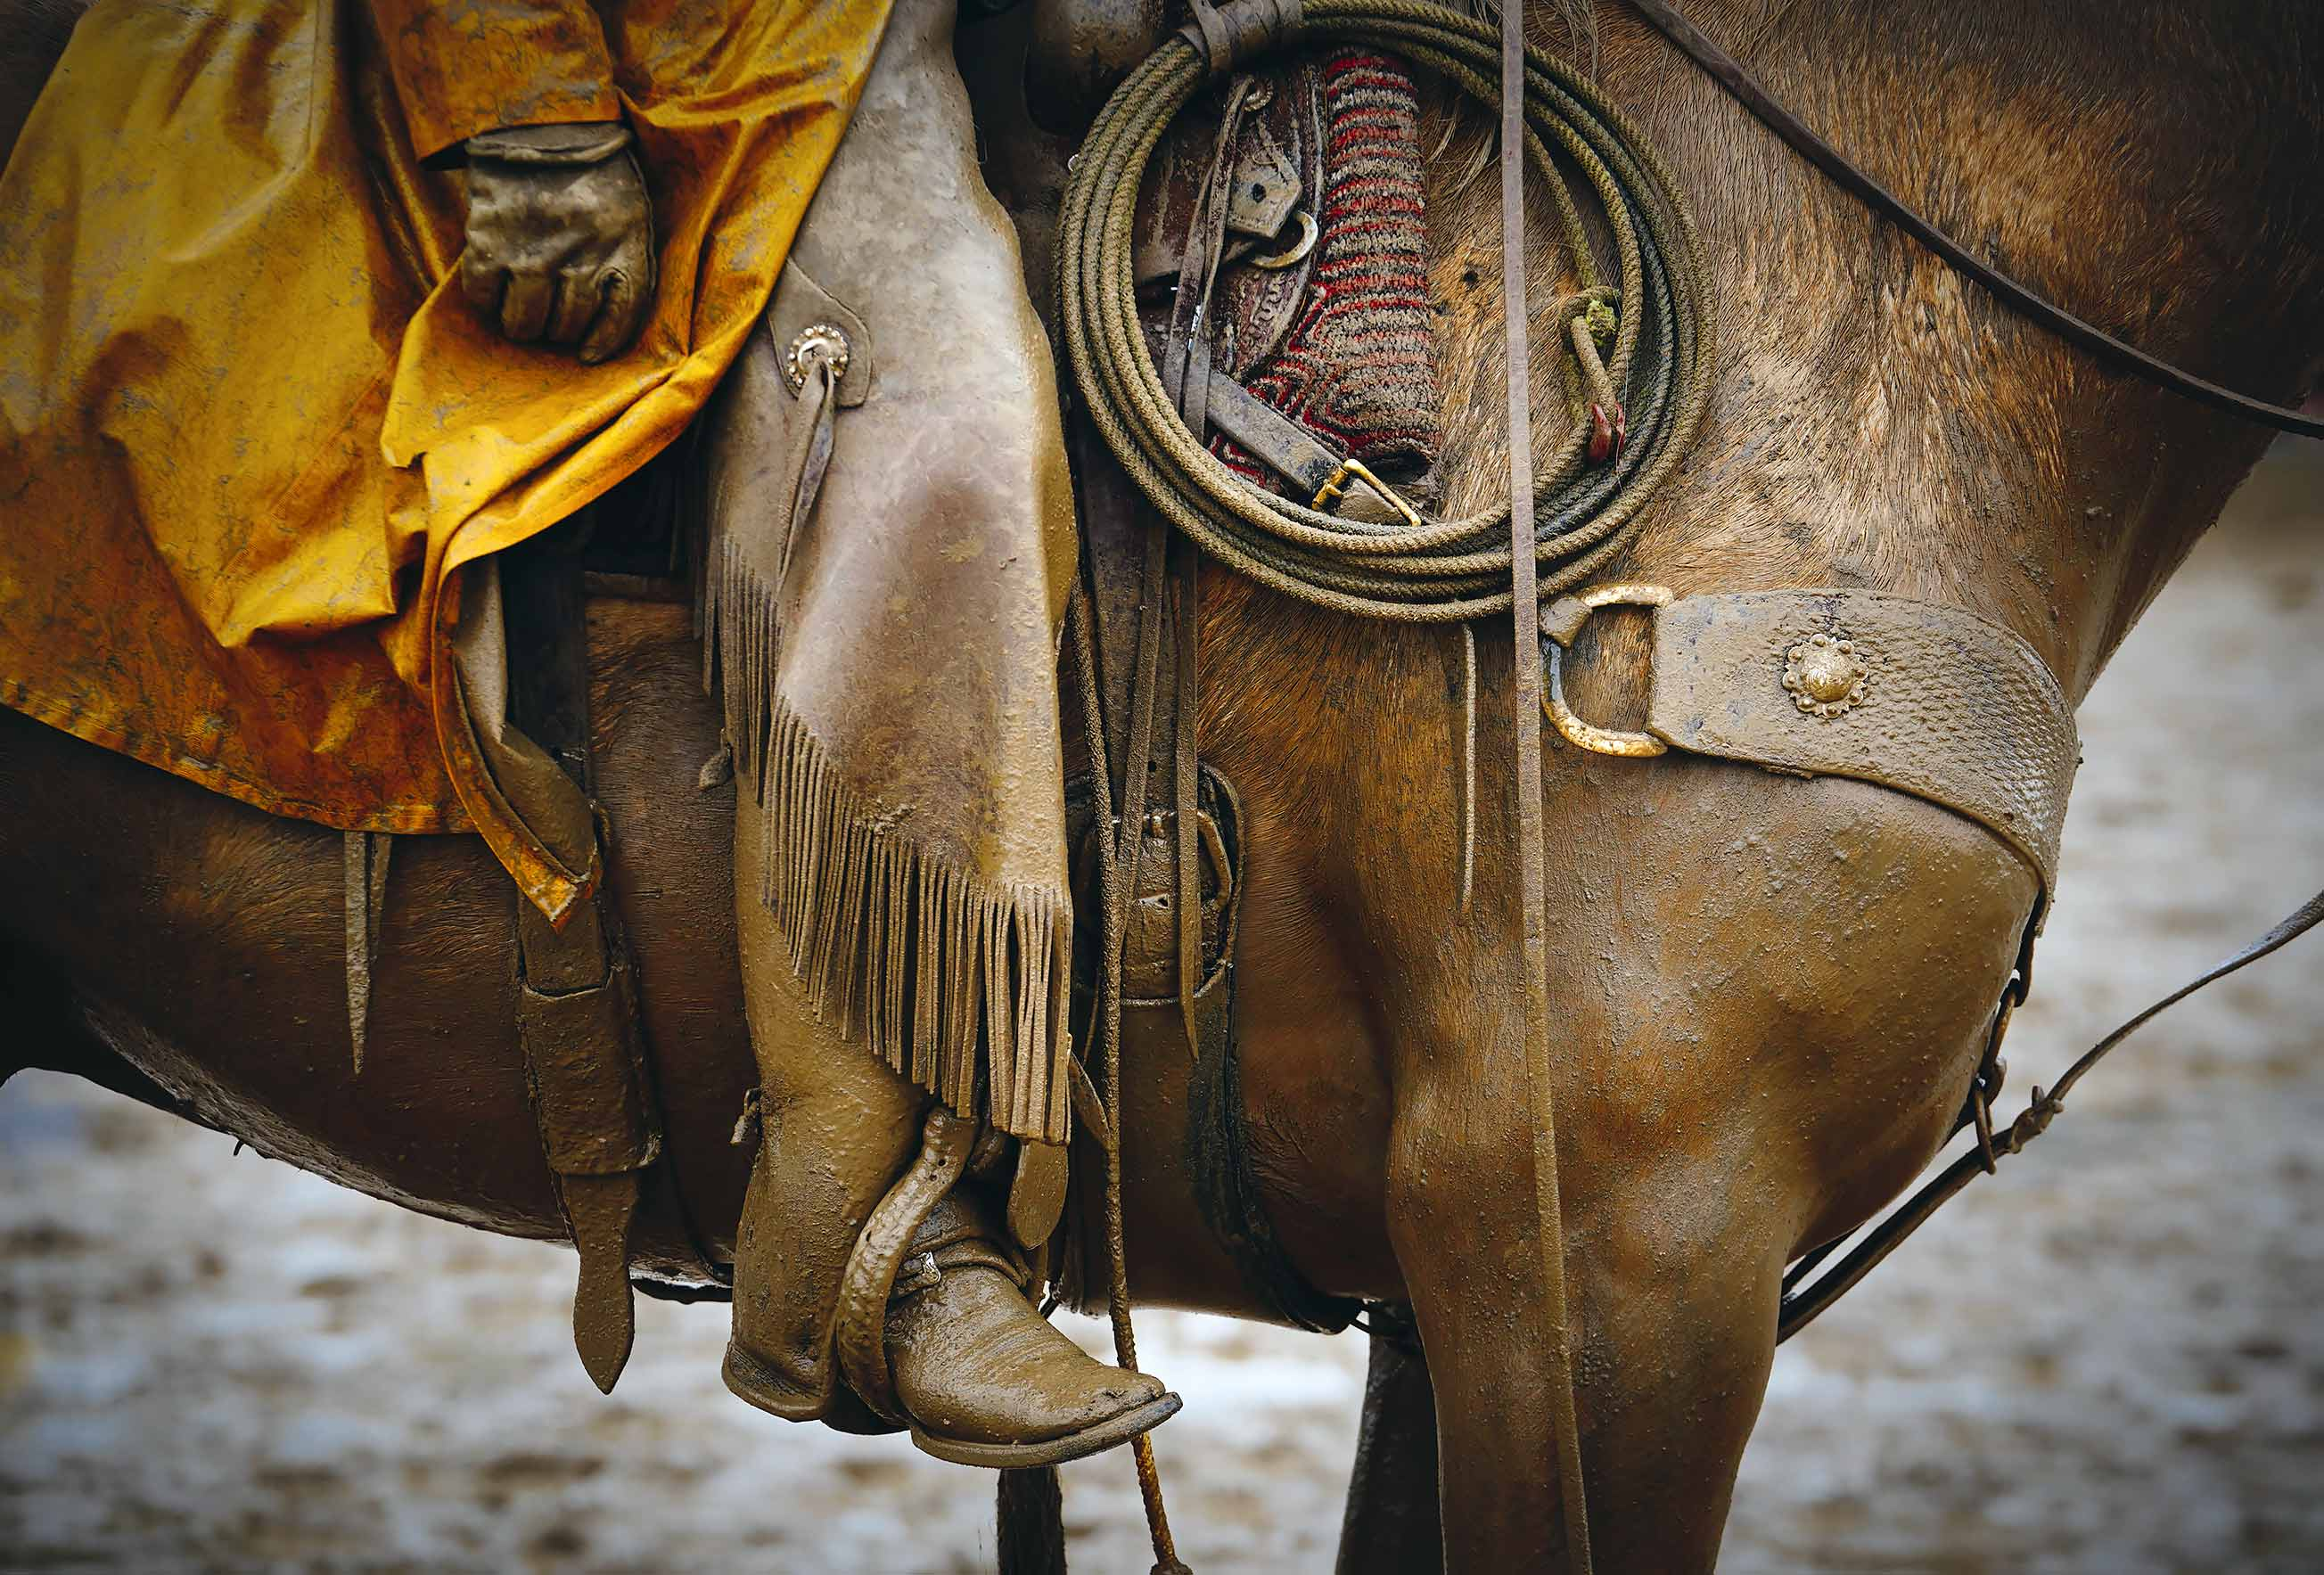 Cowboy on his horse with muddy tack